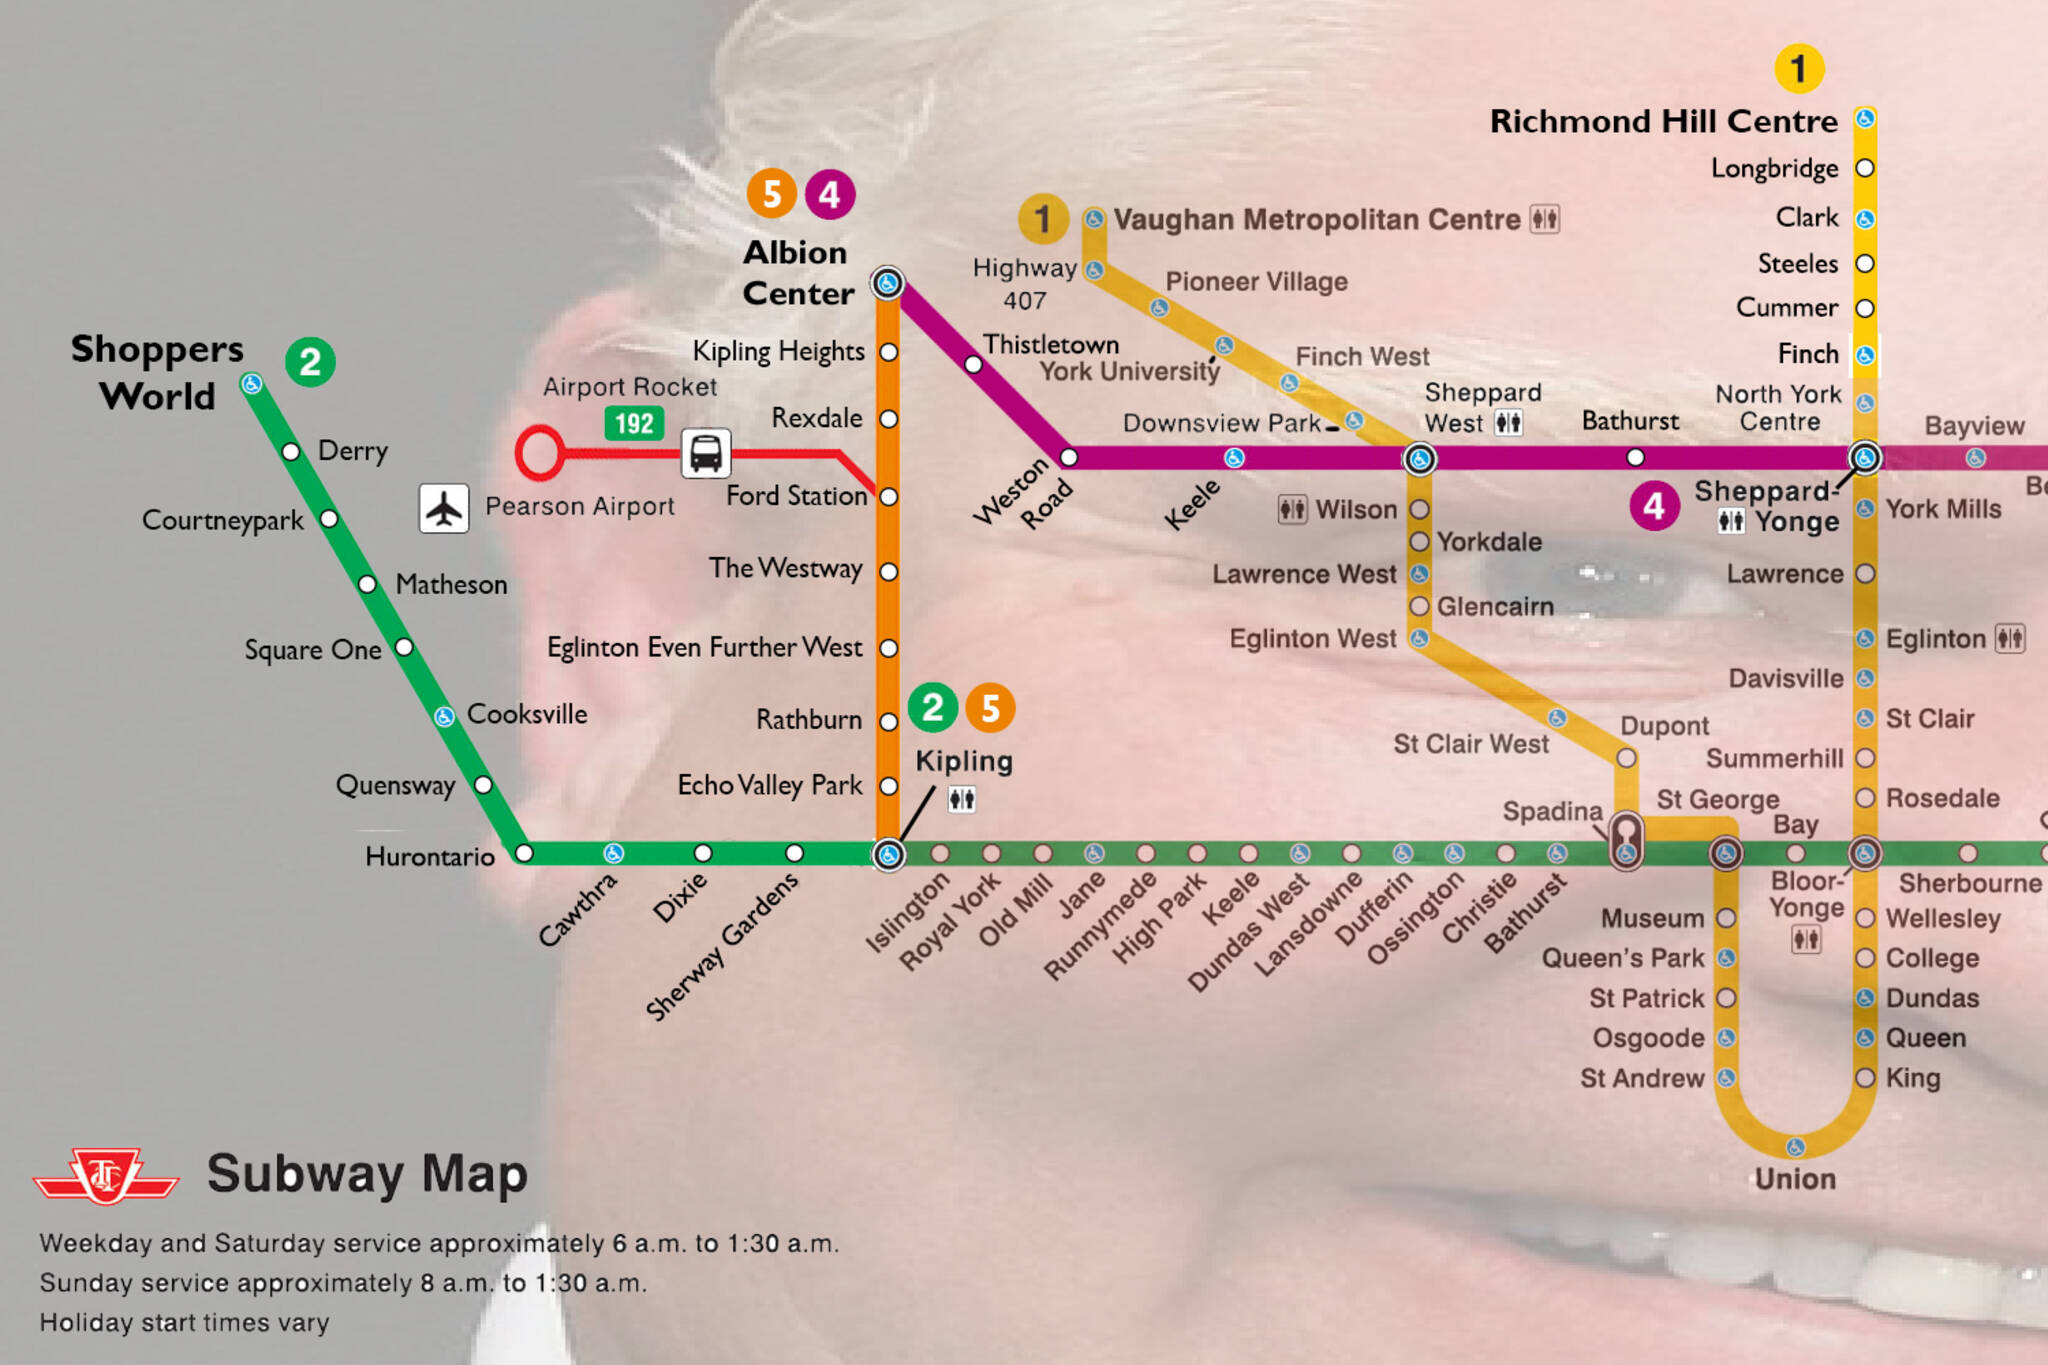 Fantasy Toronto Subway Map.Someone Just Created A Ttc Subway Fantasy Map To The Suburbs